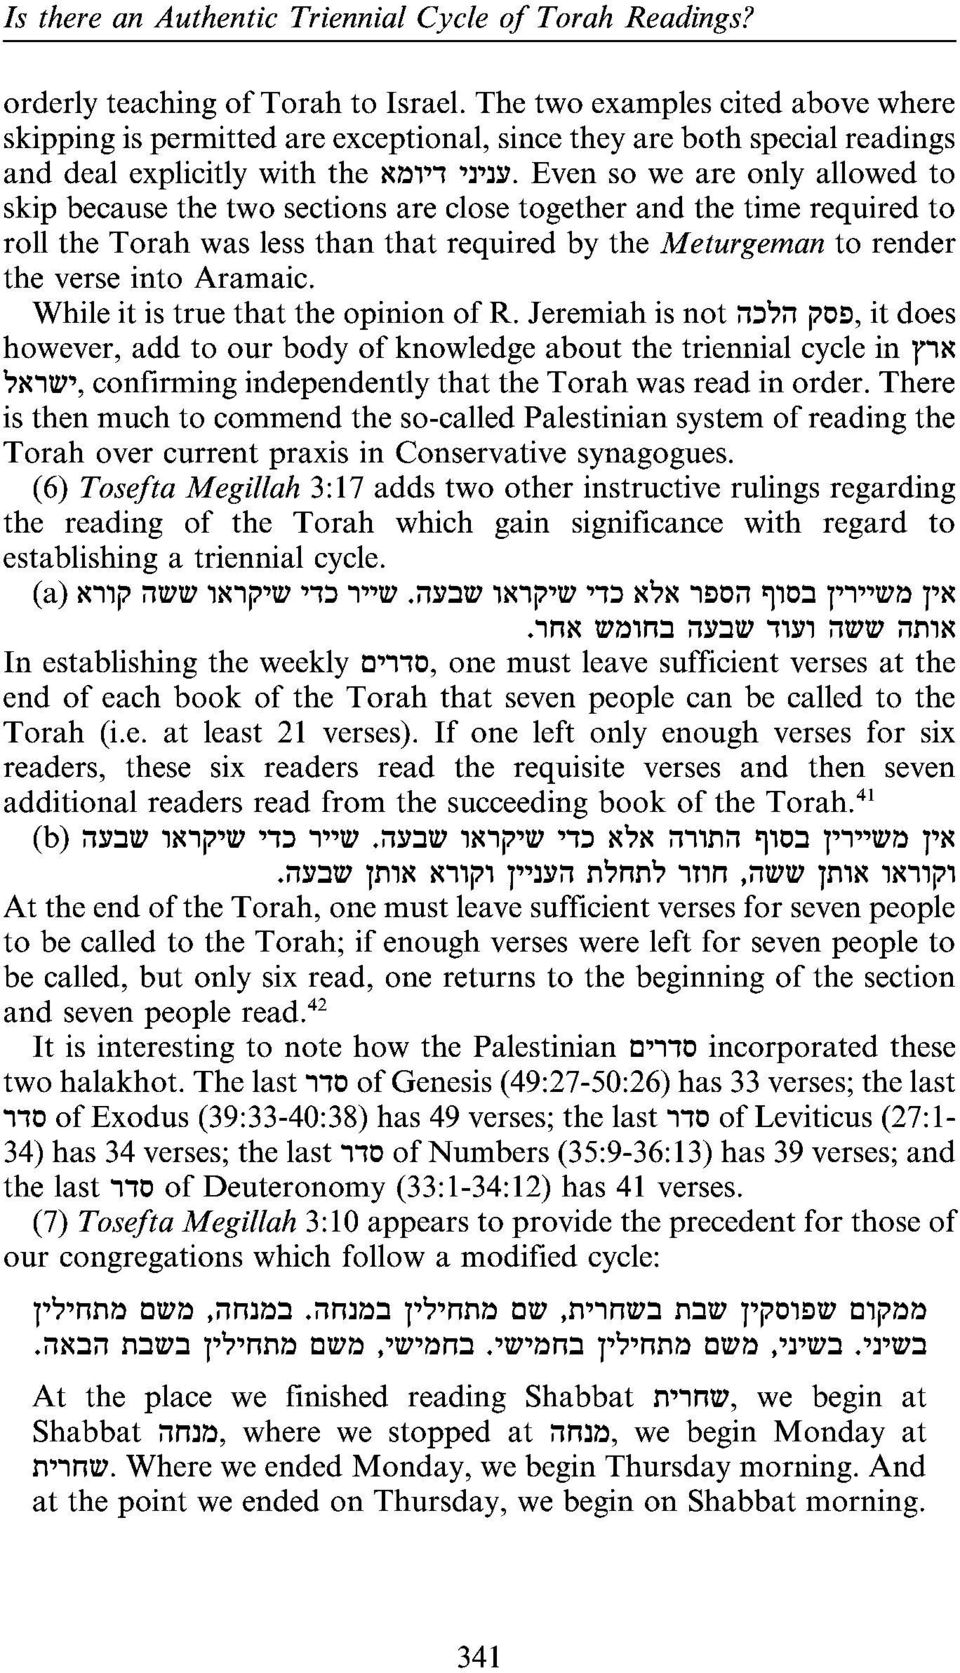 ')')l.'. Even so we are only allowed to skip because the two sections are close together and the time required to roll the Torah was less than that required by the Meturgeman to render the verse into